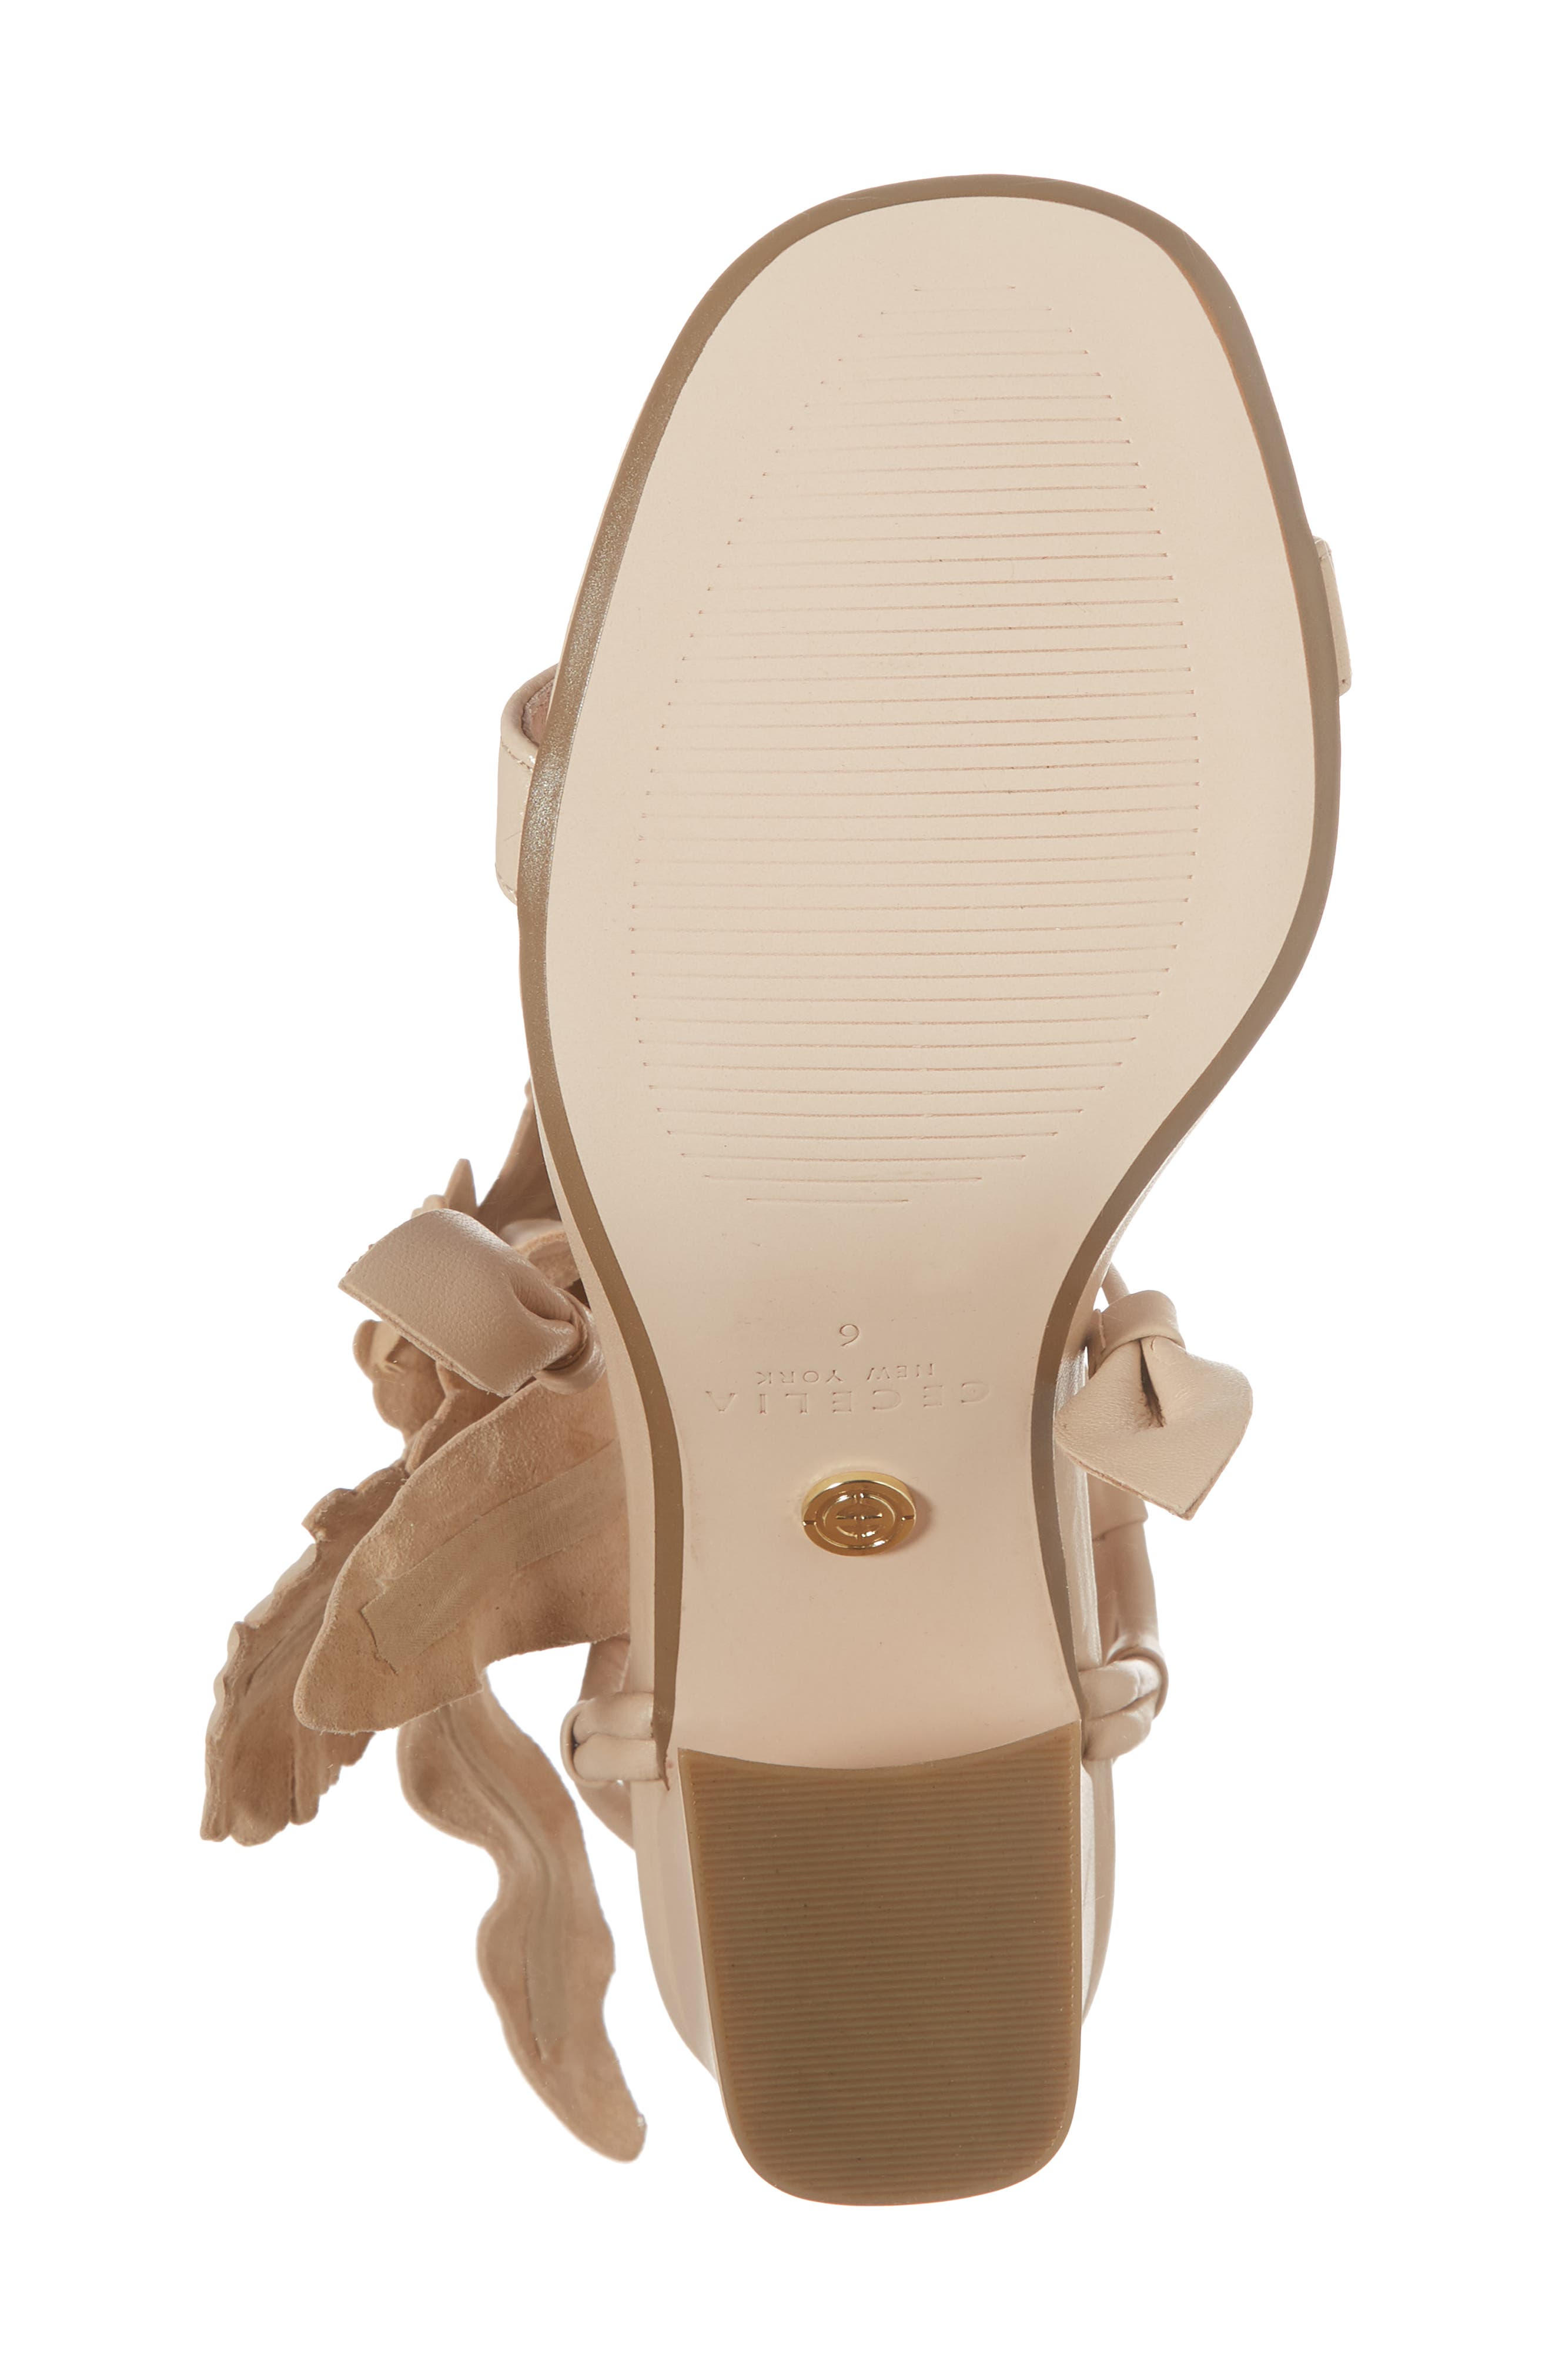 Hibiscus Sandal,                             Alternate thumbnail 6, color,                             Nude Leather